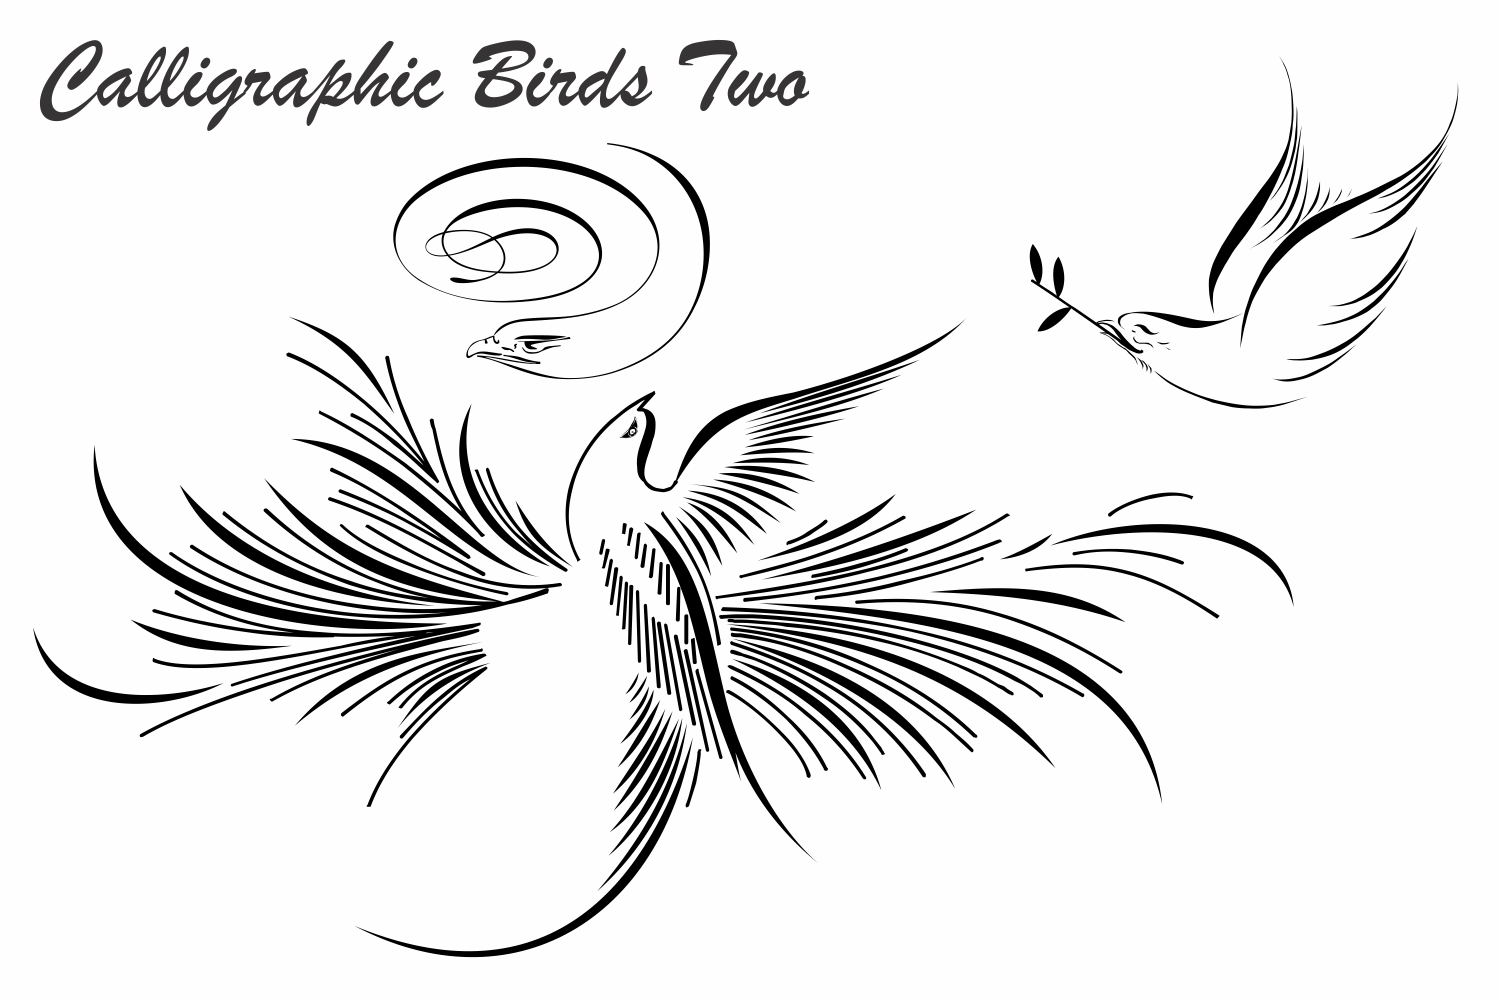 Calligraphic Birds Two example image 4